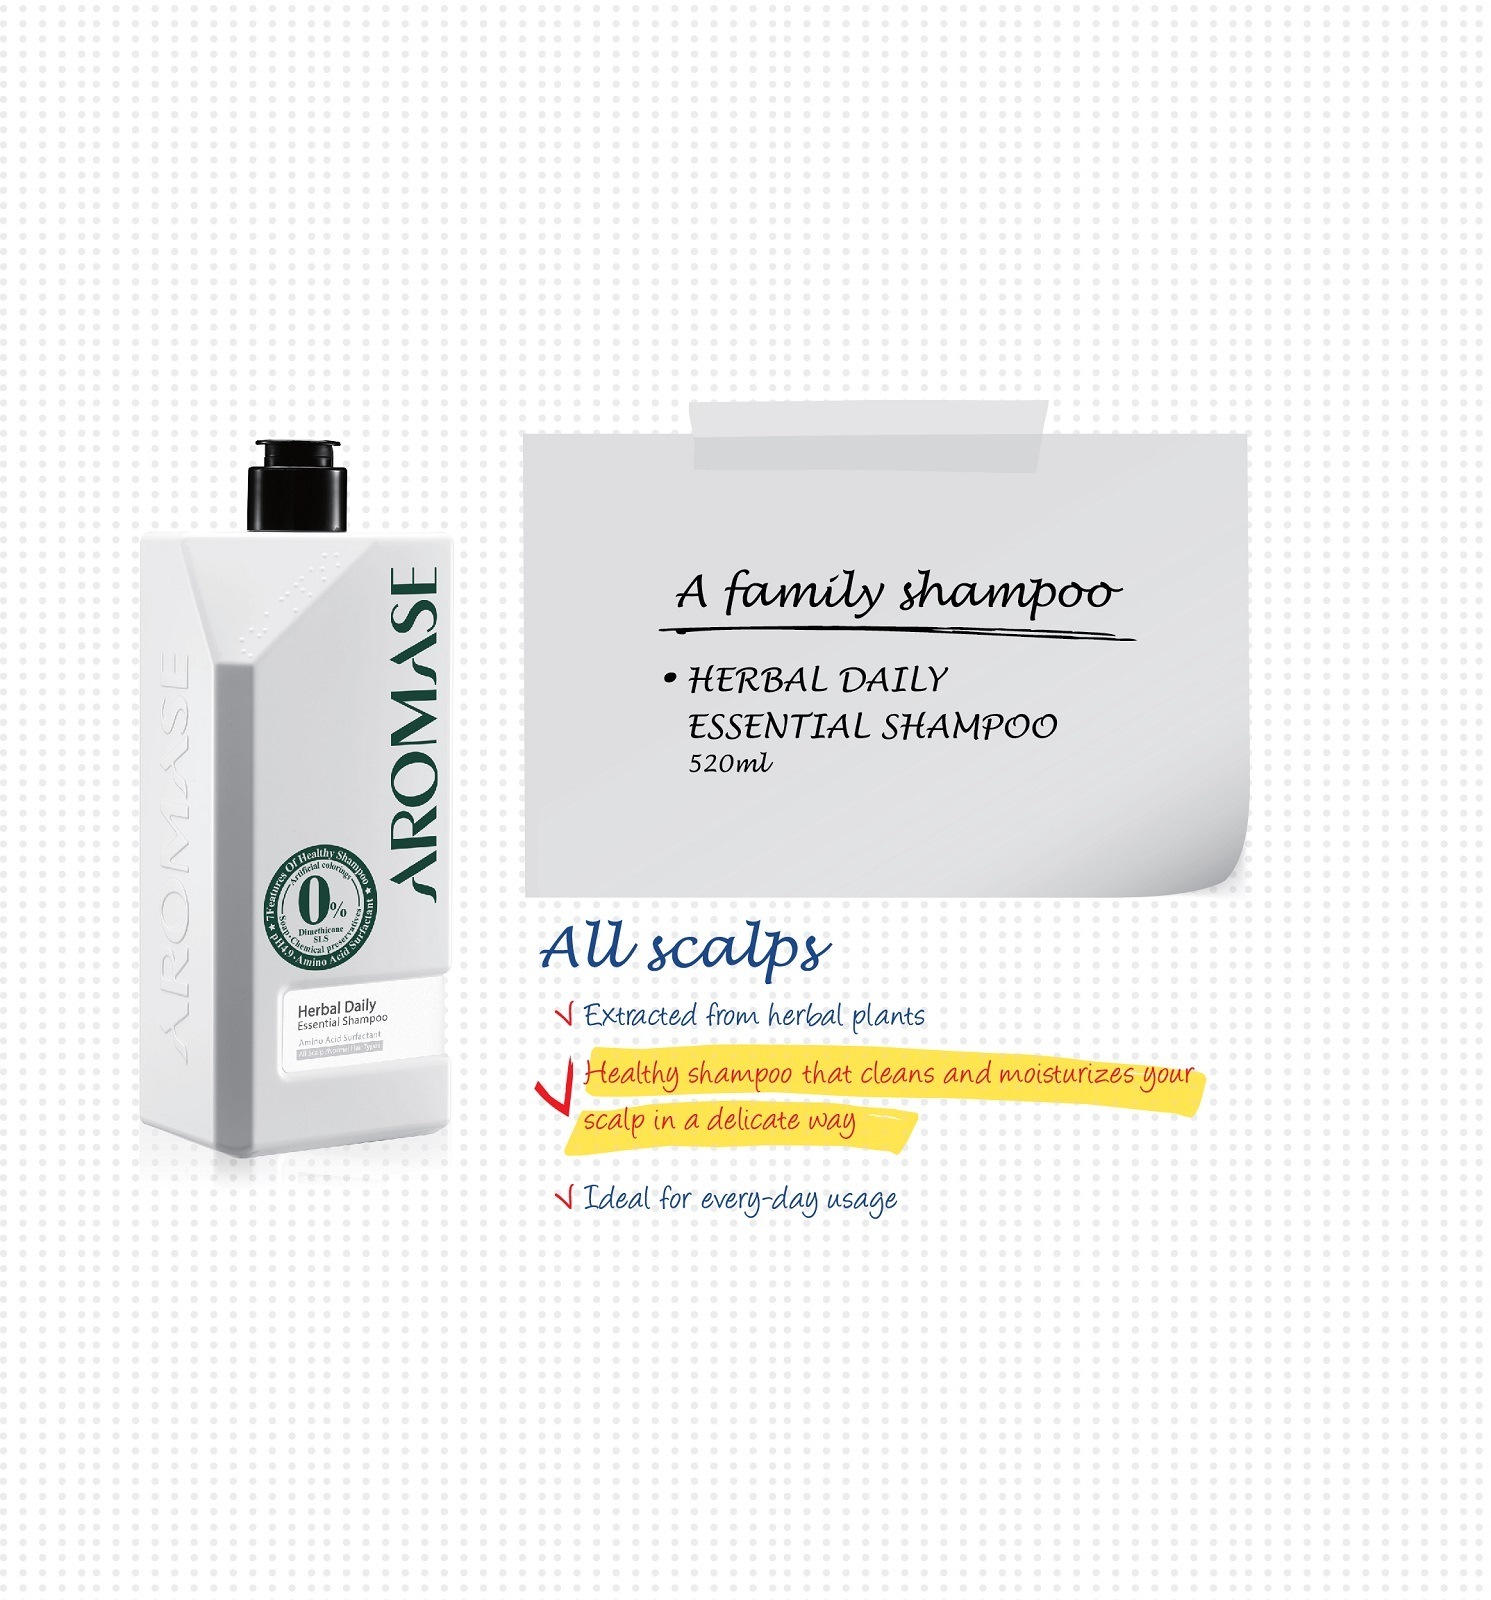 Aromase Herbal Daily Essential Shampoo 520ml + Aromase 5α Juniper Scalp  Purifying liquid Shampoo 80ml on sale at RM49 90